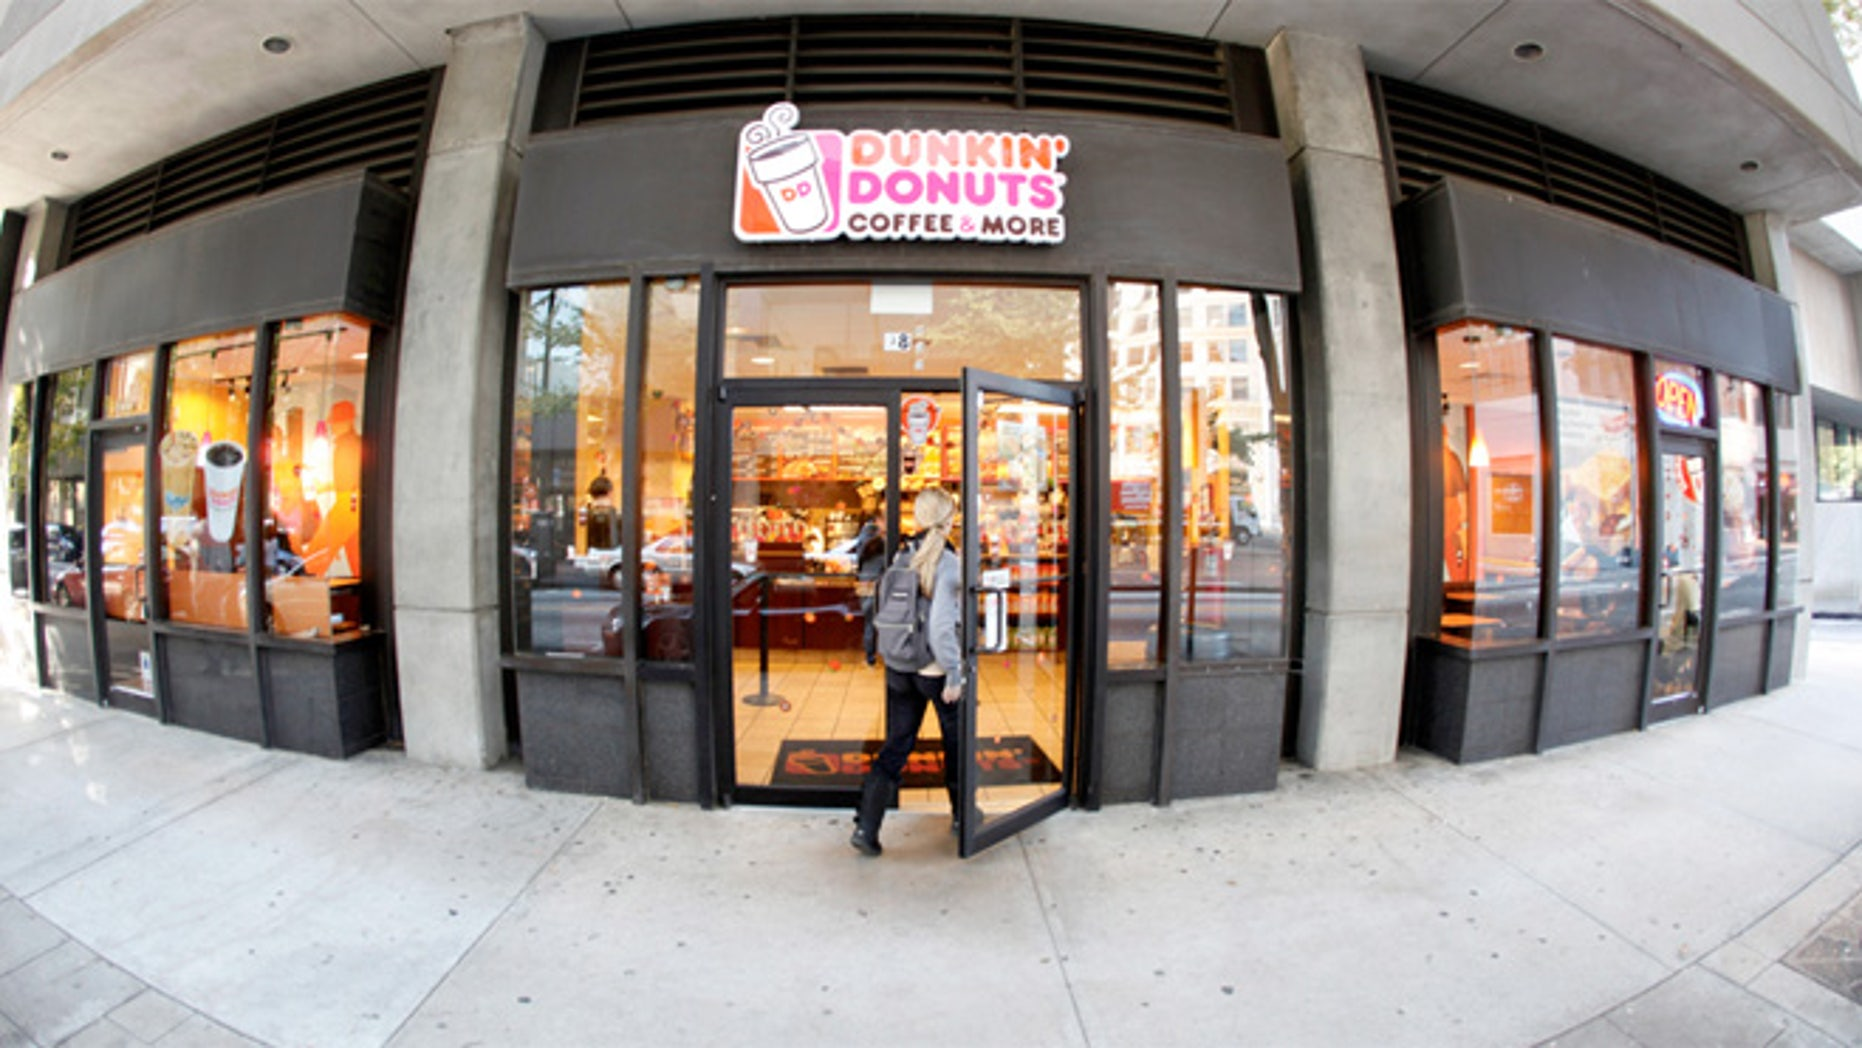 Dunkin' Donuts eventually wants 17,000 chains in the U.S., and 30,000 outlets around the world.